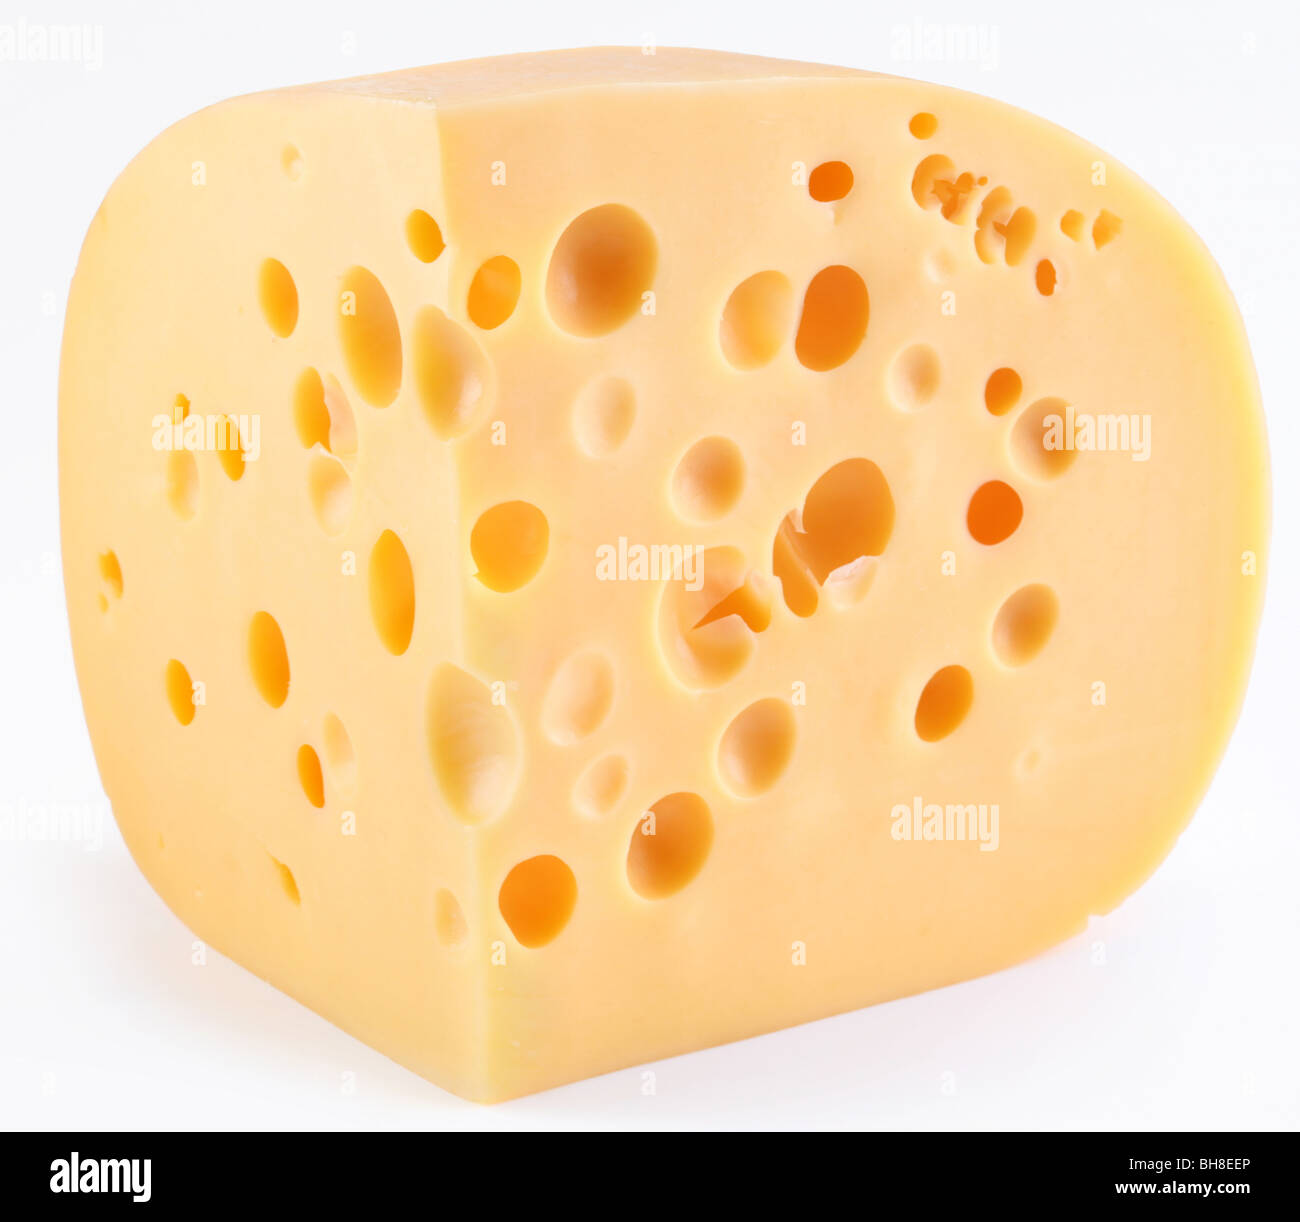 Dutch cheese on a white background - Stock Image